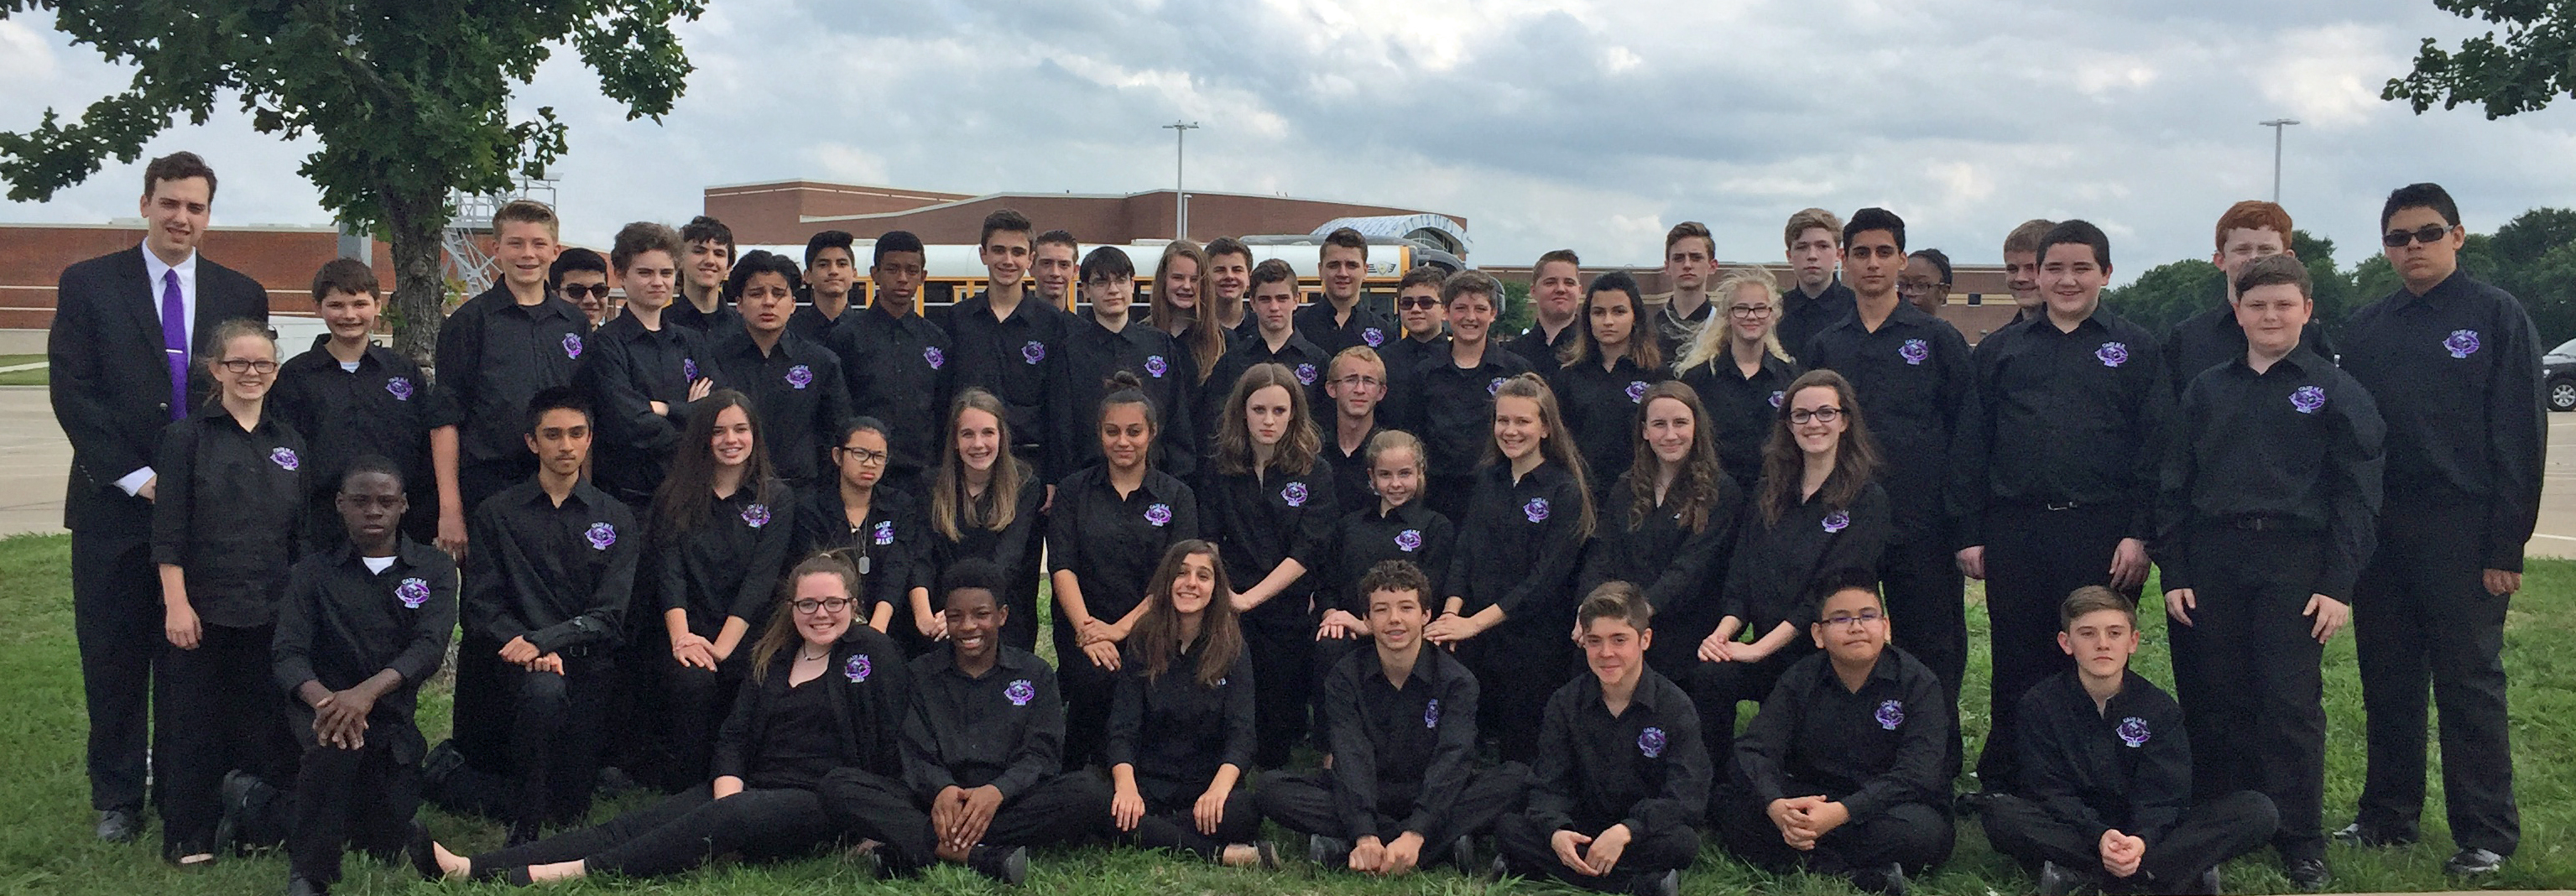 Cain Middle School Symphonic, Honors bands earn 'Excellent' ratings at UIL Evaluation